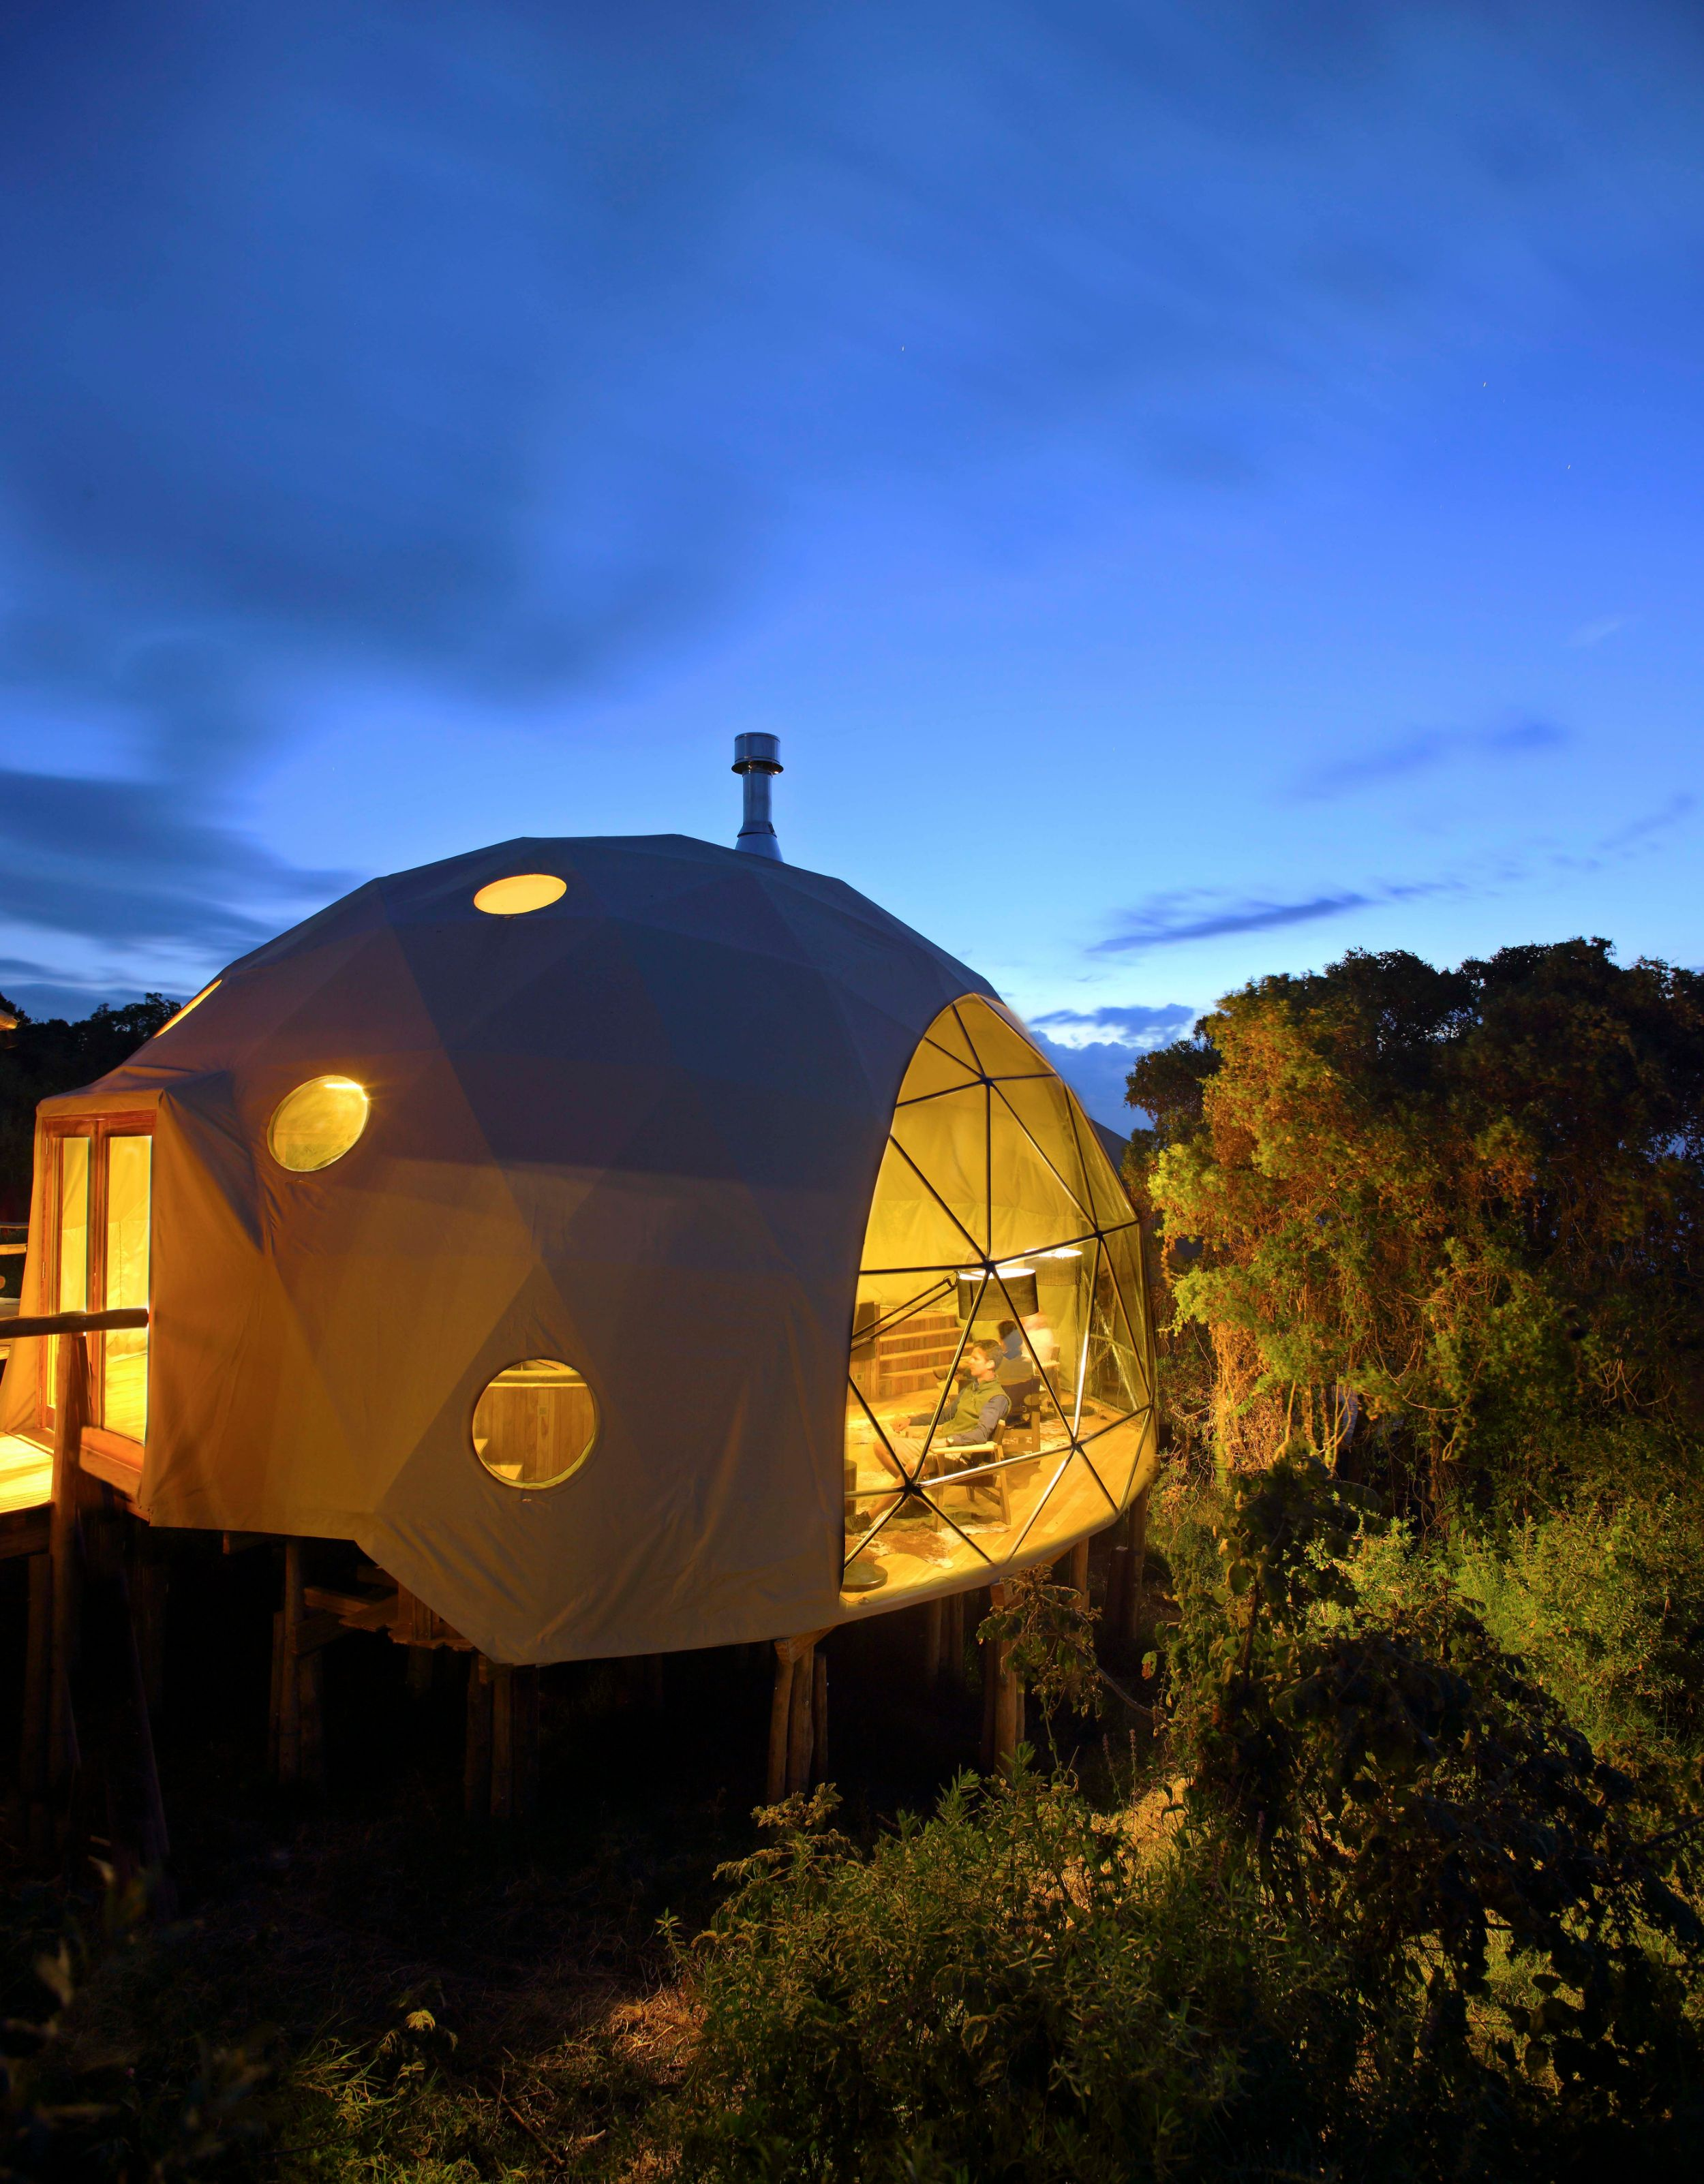 The-Highlands-lounge-dome-at-night.jpg